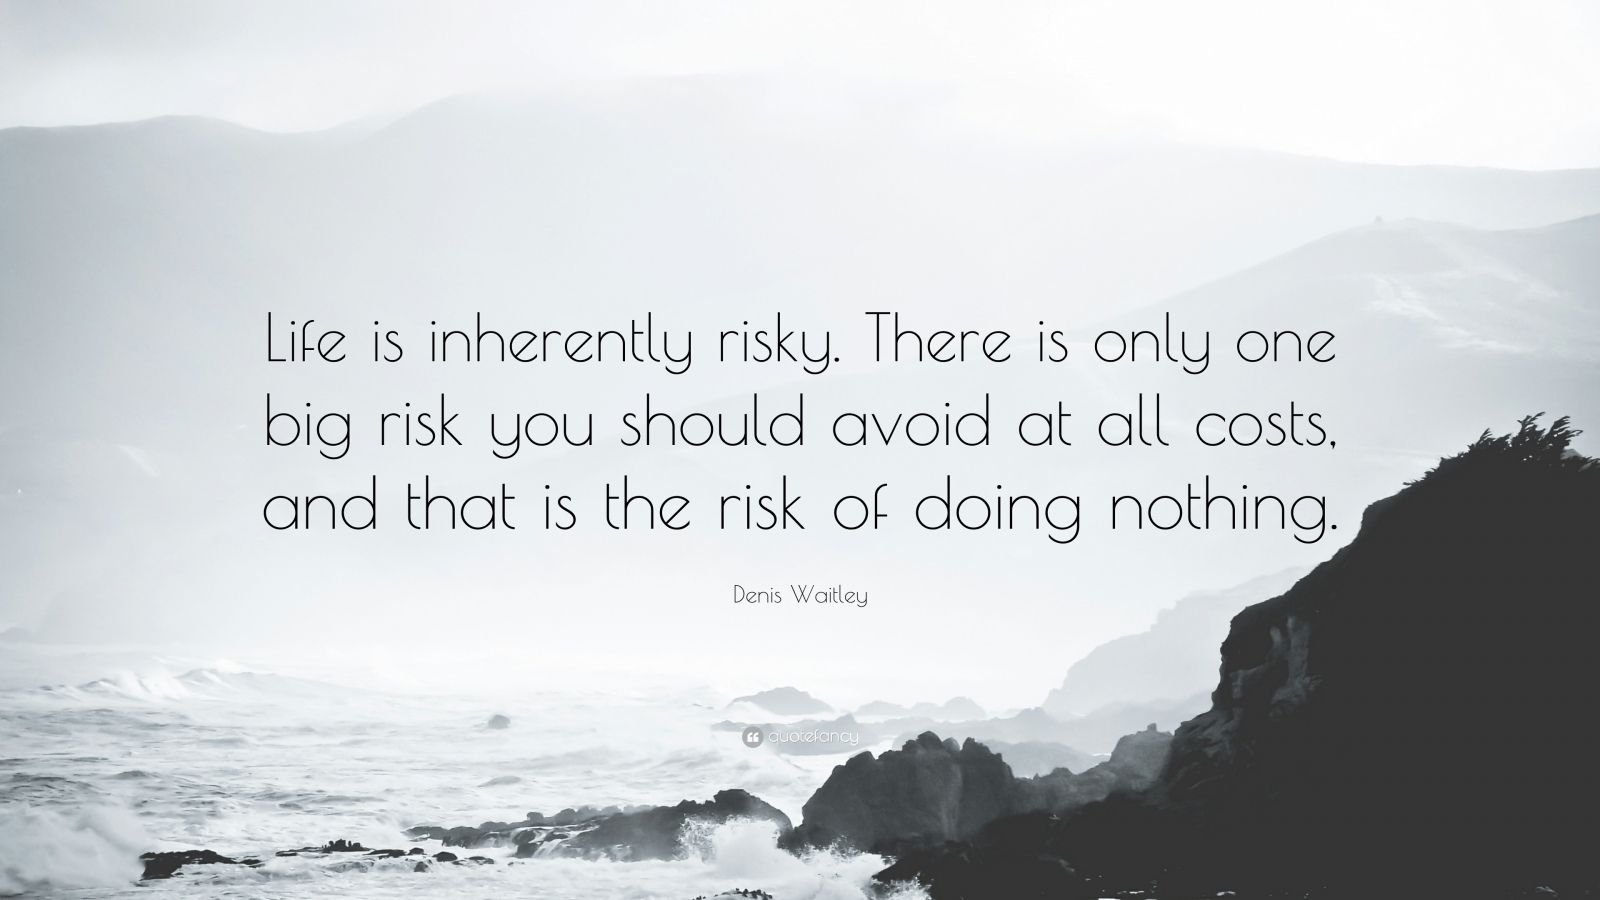 """Denis Waitley Quote: """"Life is inherently risky. There is only one big risk you should avoid at all costs, and that is the risk of doing nothing."""""""